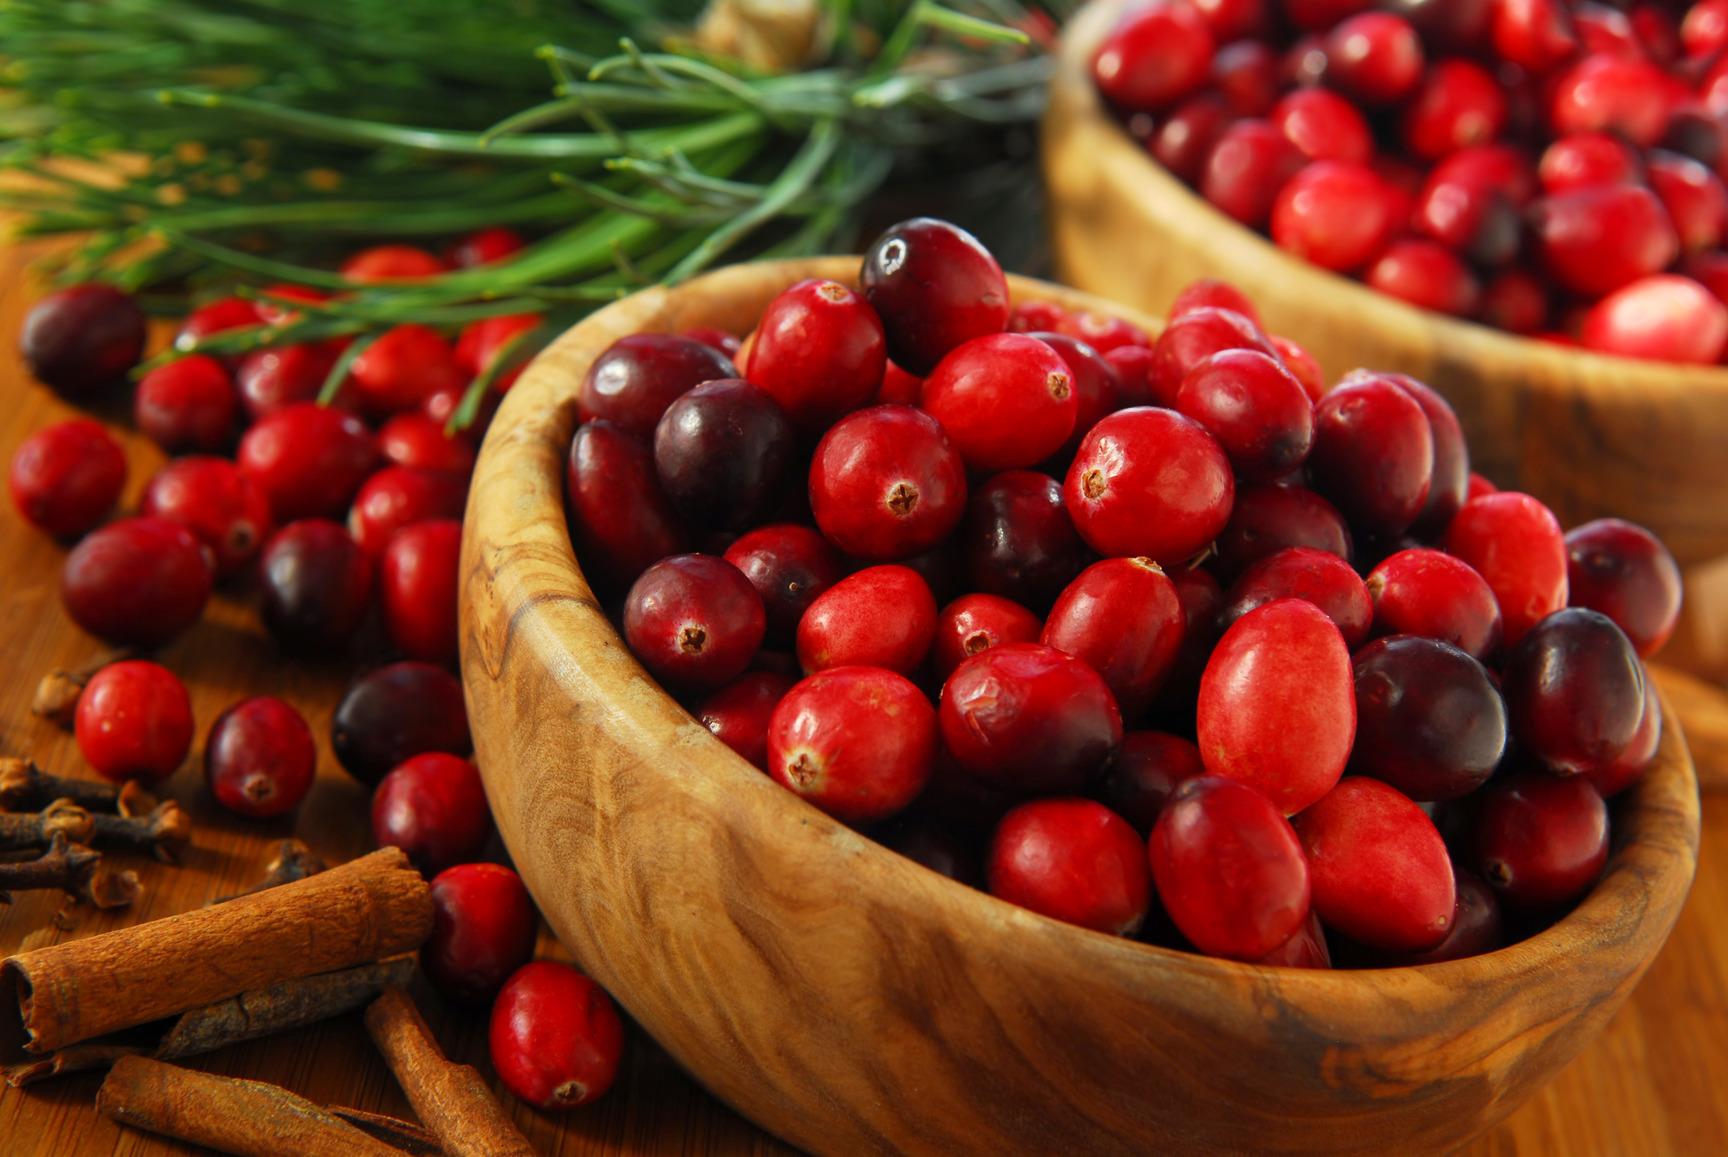 Cranberries in bowls (get the image on Photodune.net)